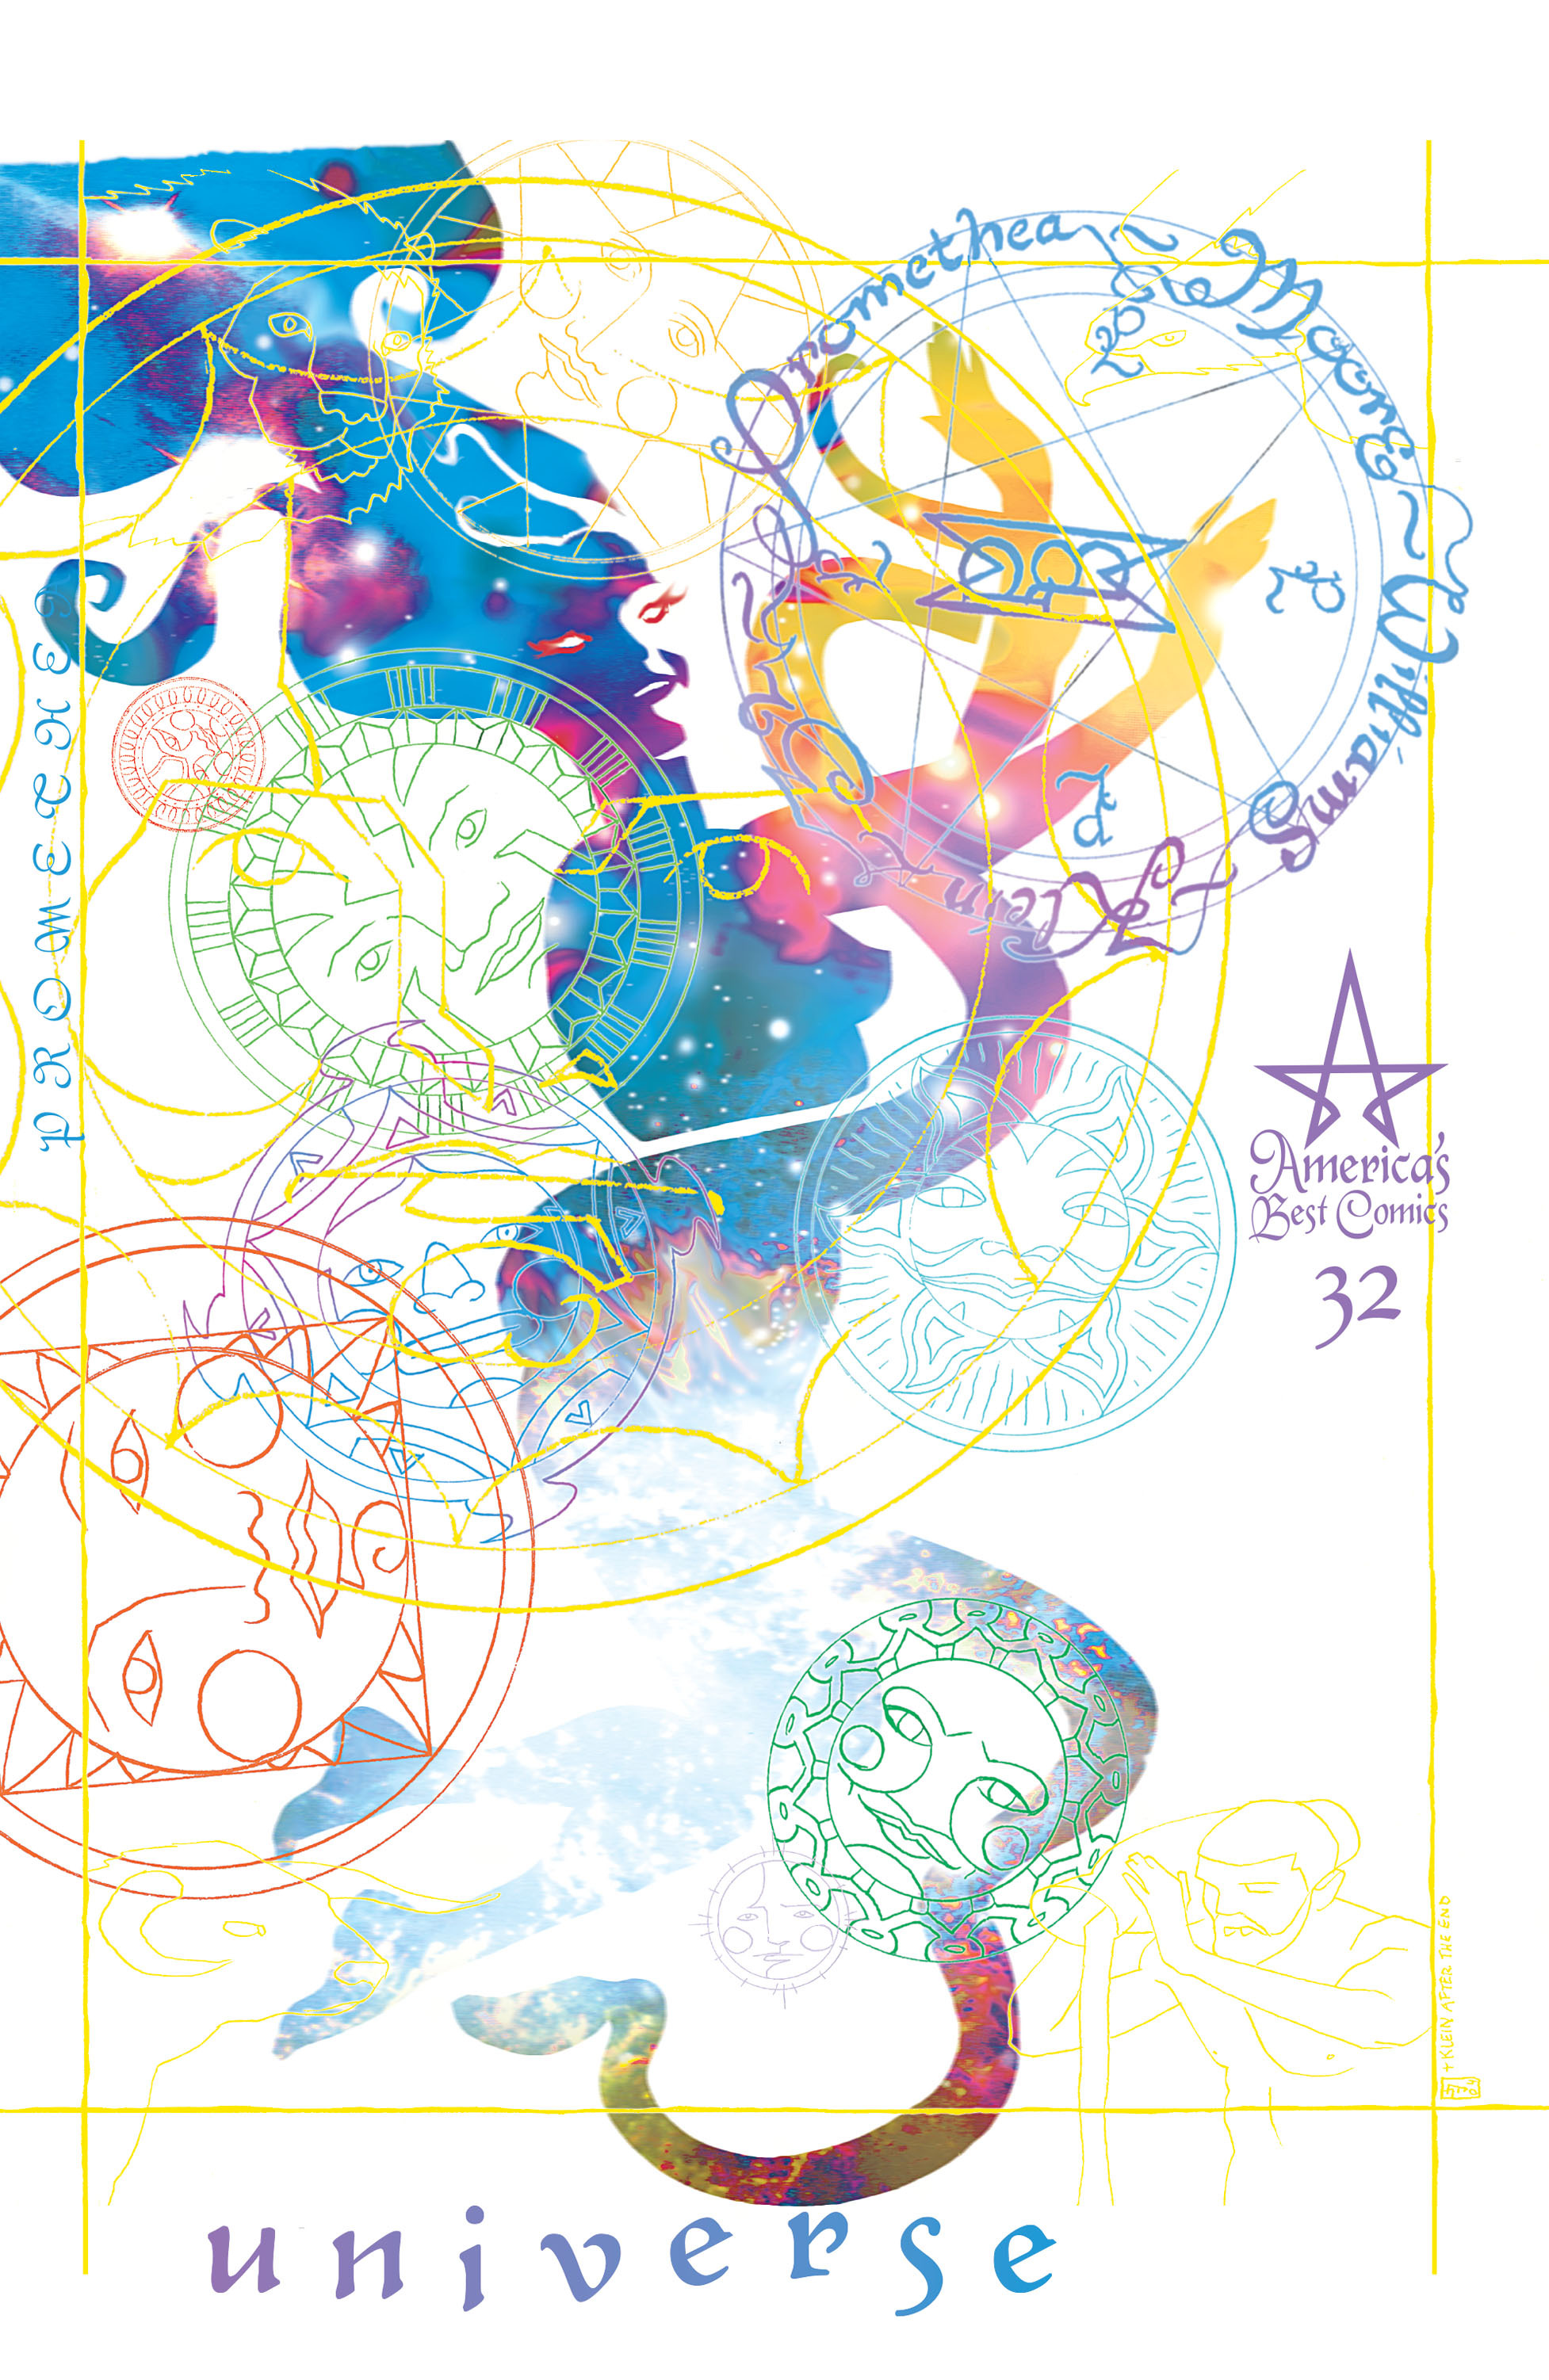 Promethea  #32 (America's Best Comics, April 2005), cover